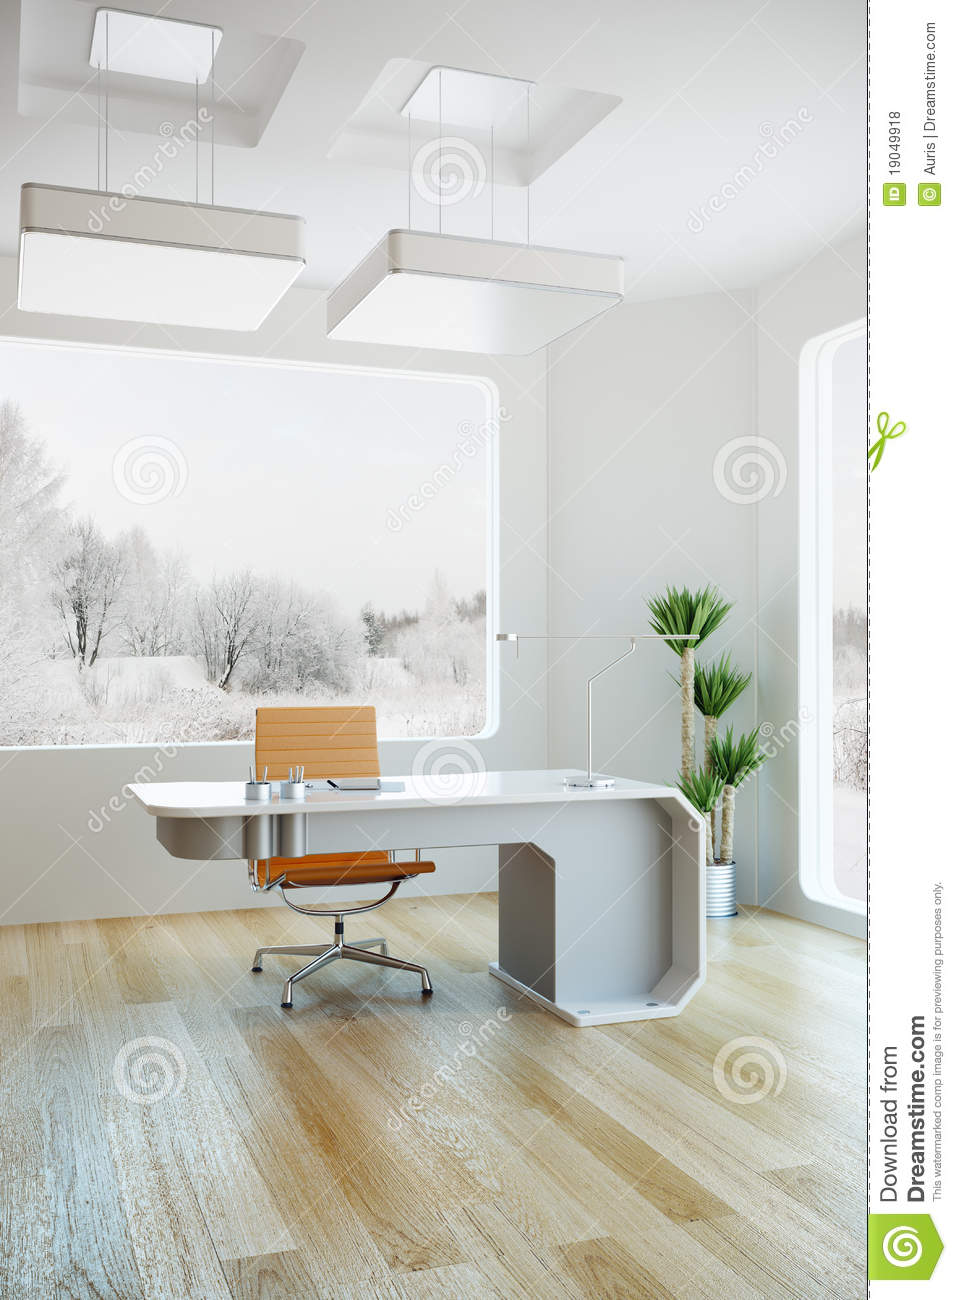 Royalty Free Stock Photo Design Interior